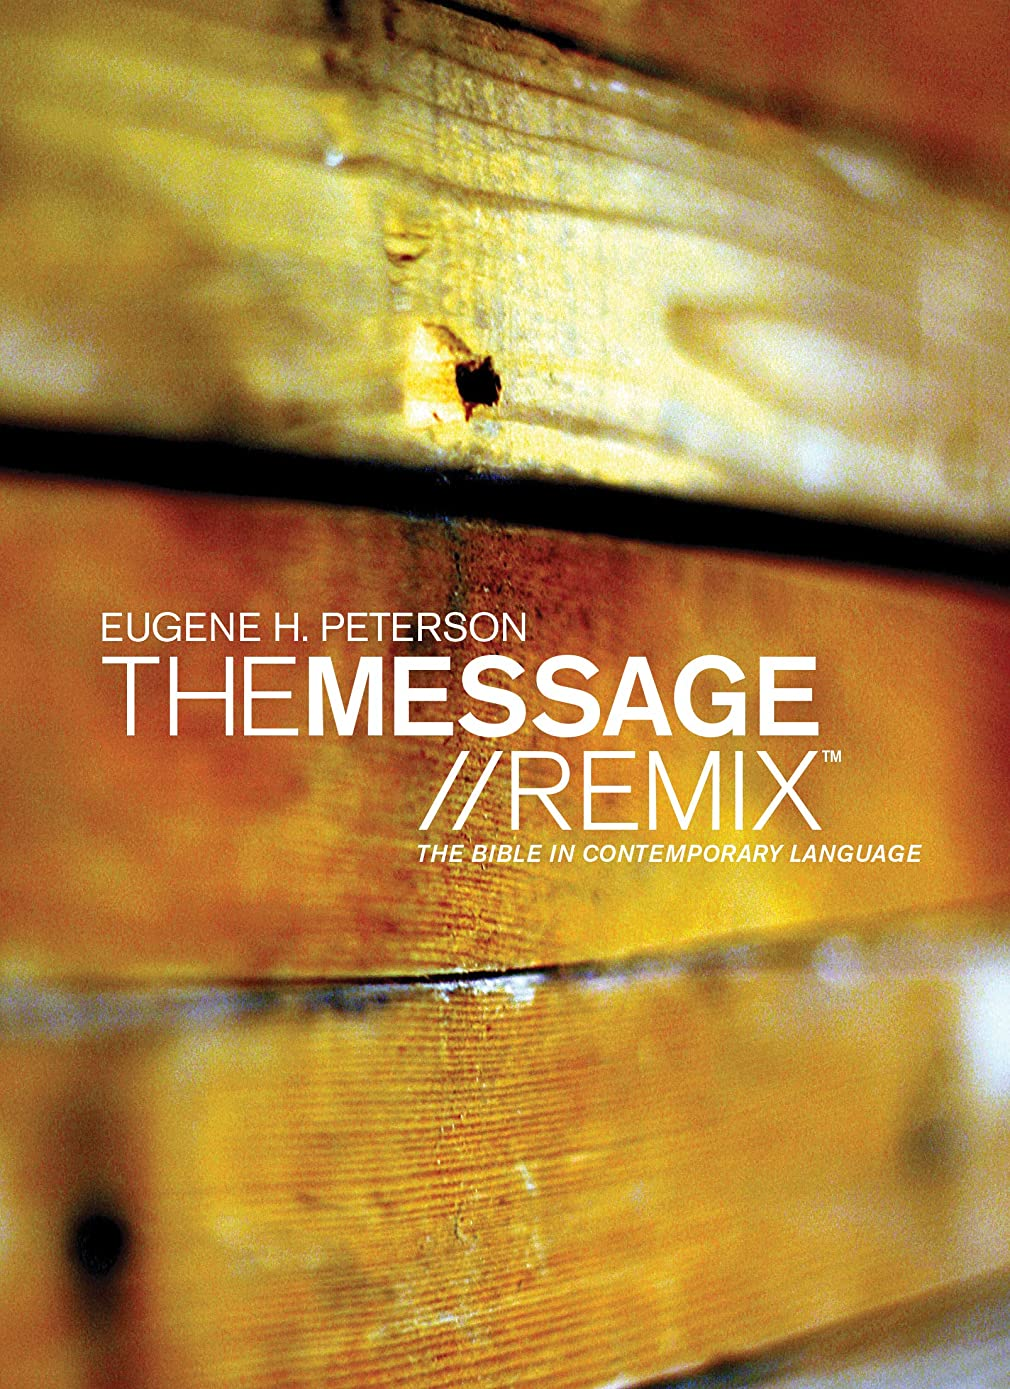 The Message//REMIX (Hardcover, Wood): The Bible in Contemporary Language